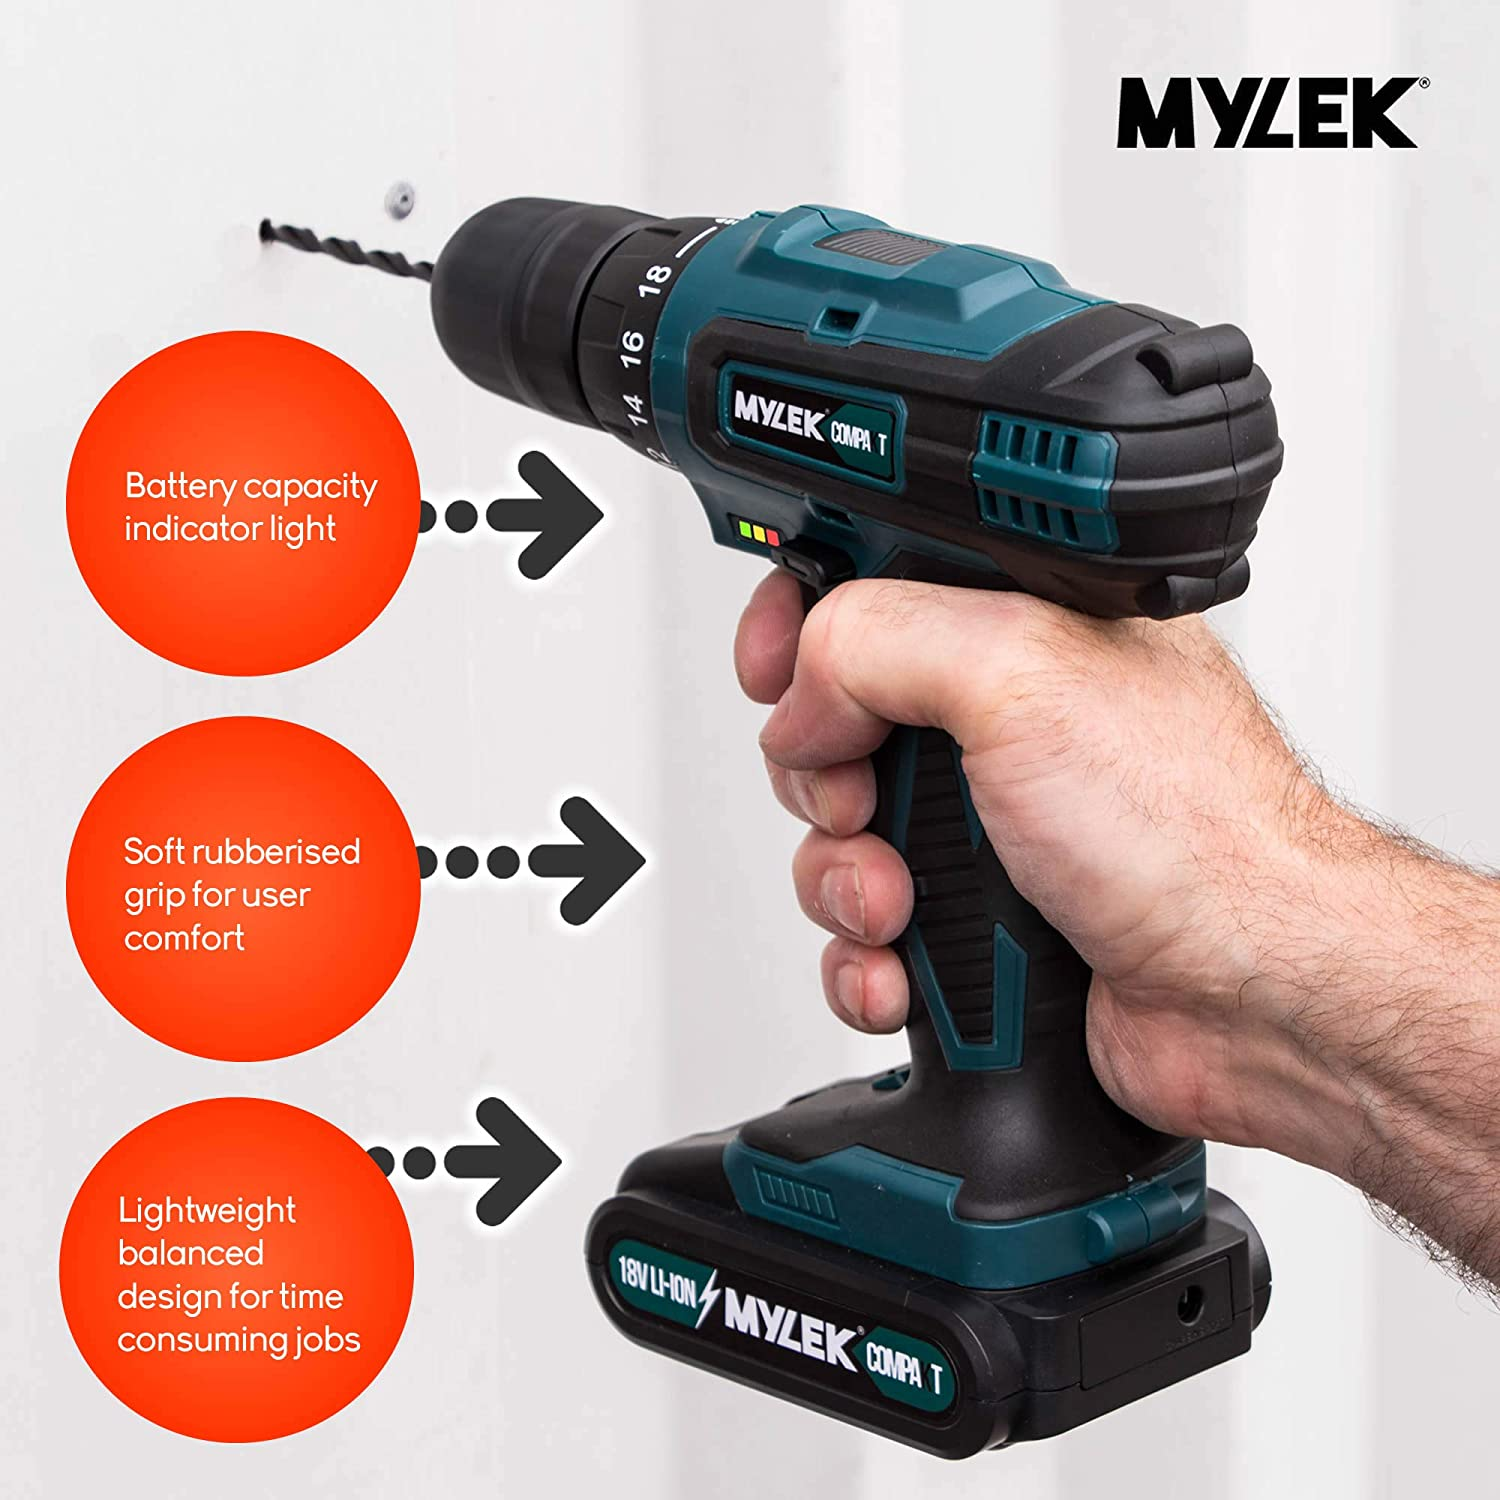 MYLEK MY2706 VCB 18V Cordless Driver-Lithium Ion Drill Set-13 Piece Combi  Accessory Kit-LED Worklight, 18 V